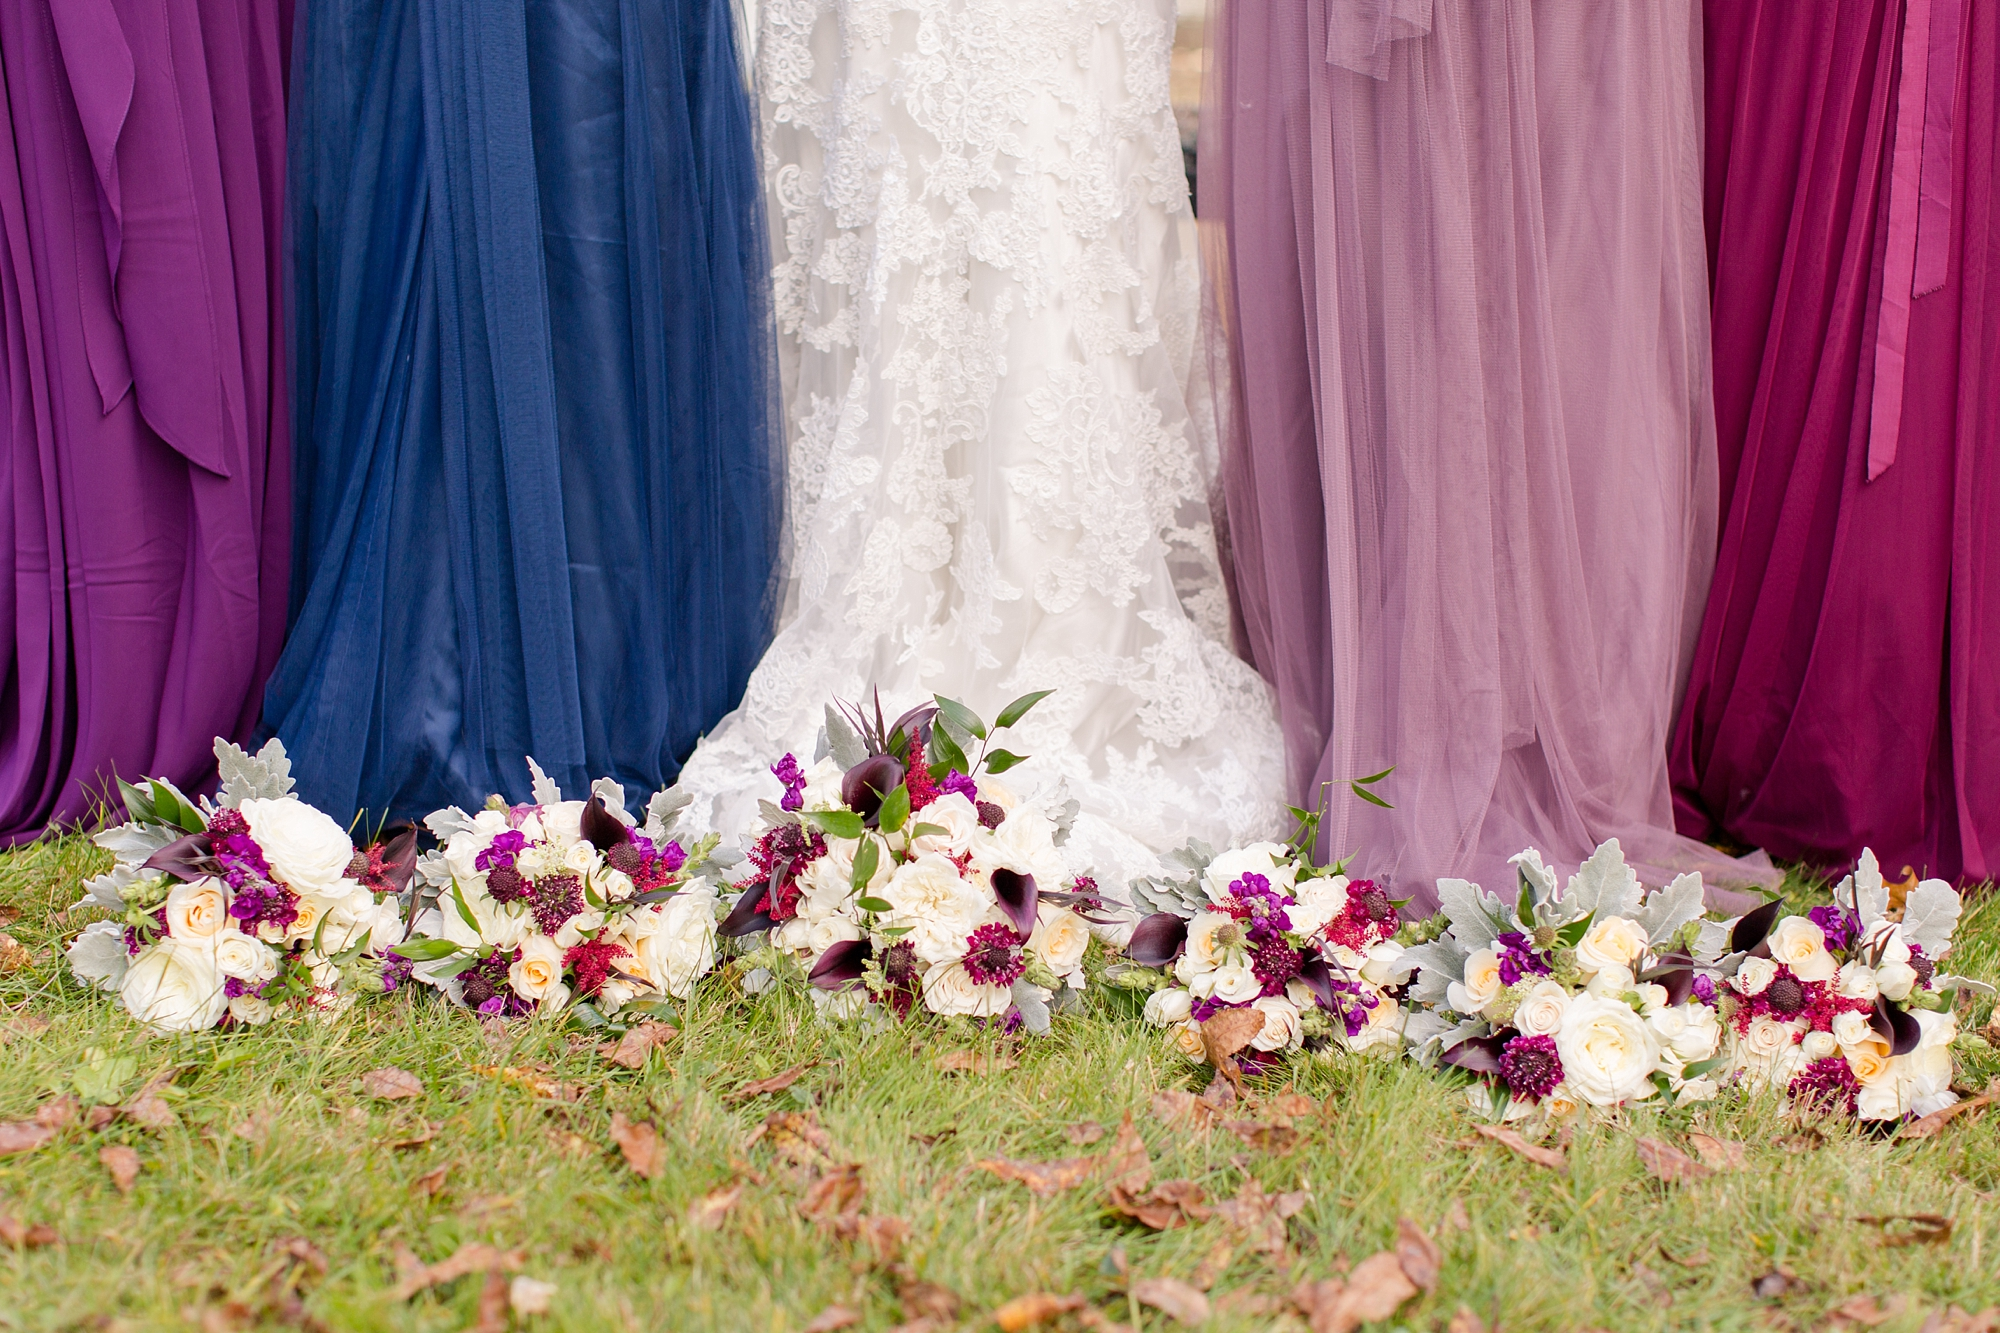 Bird 4. Bridal Party-434_anna grace photography baltimore maryland wedding photographer chanteclaire wedding photo.jpg